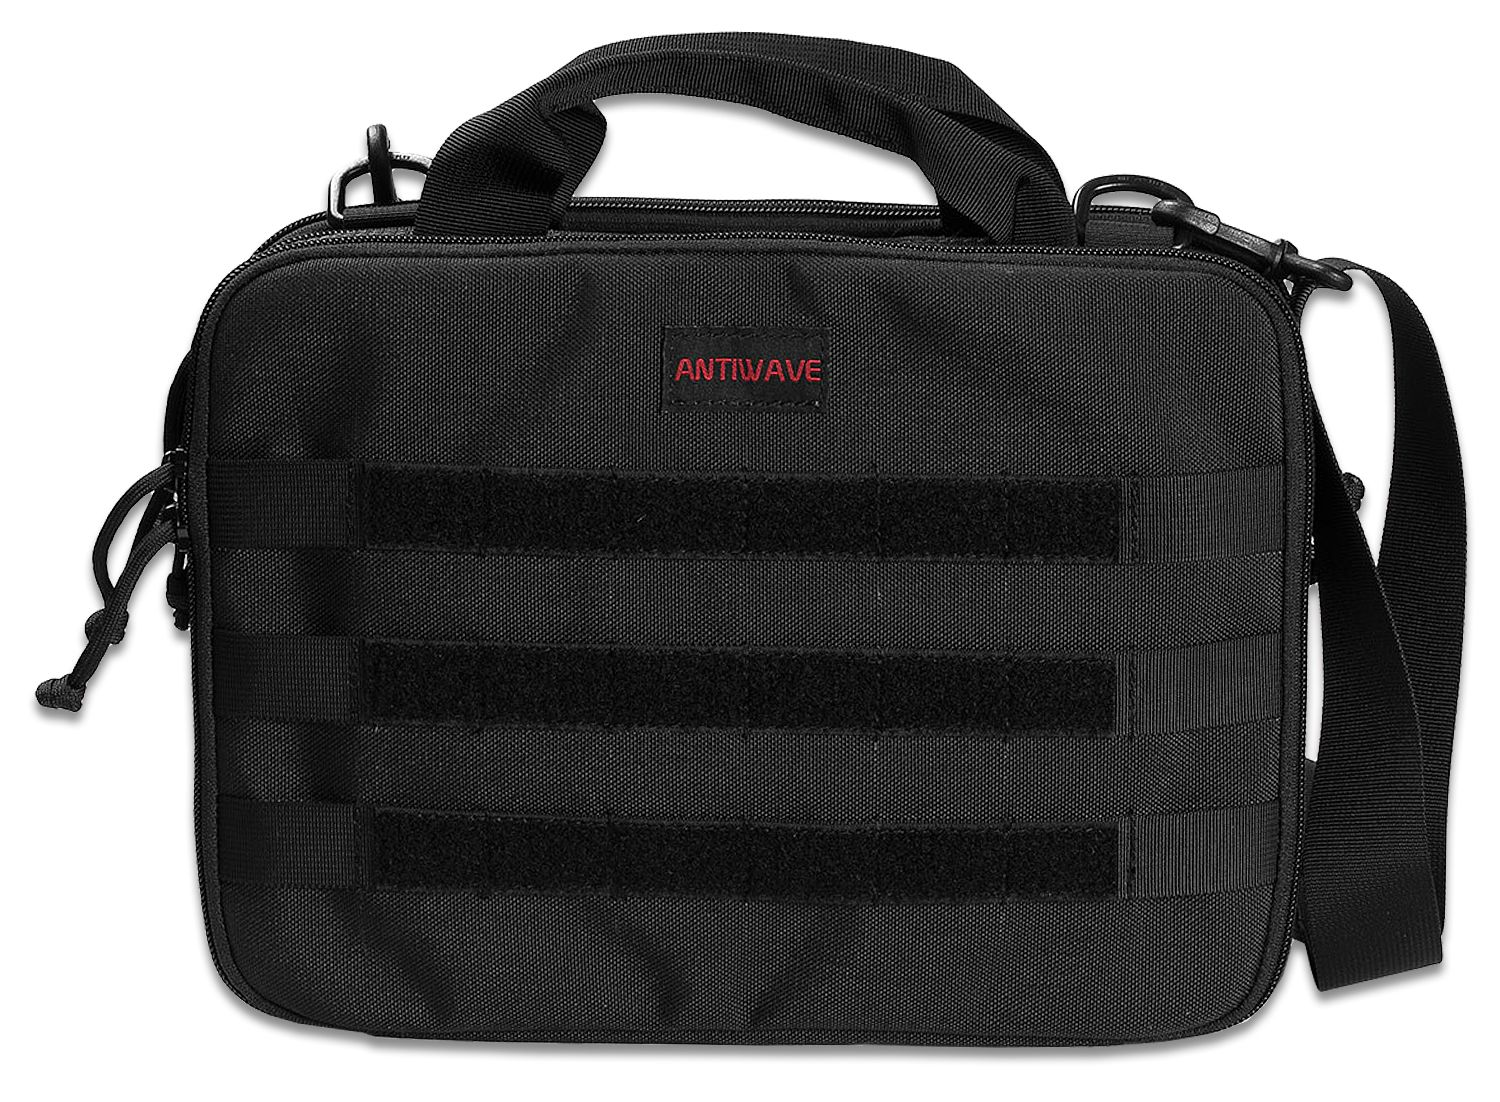 Antiwave Chameleon Tactical Gear Bag, Black